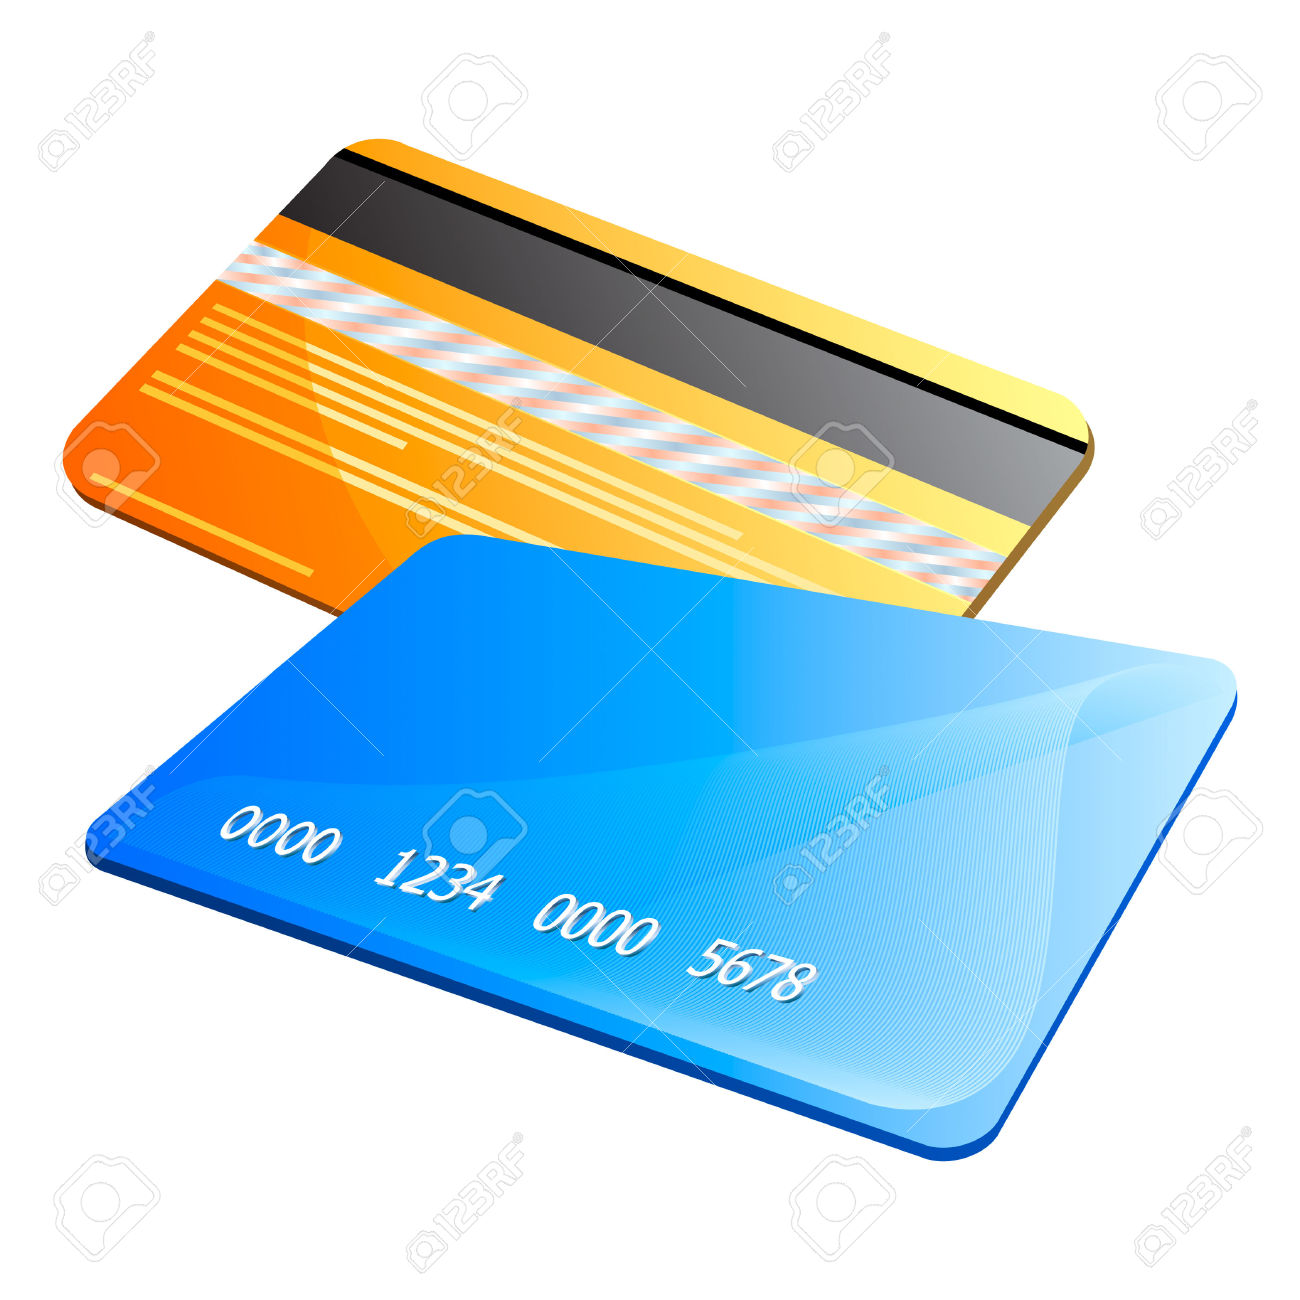 Clipart of credit card payment png library Free Credit Card Cliparts, Download Free Clip Art, Free Clip Art on ... png library